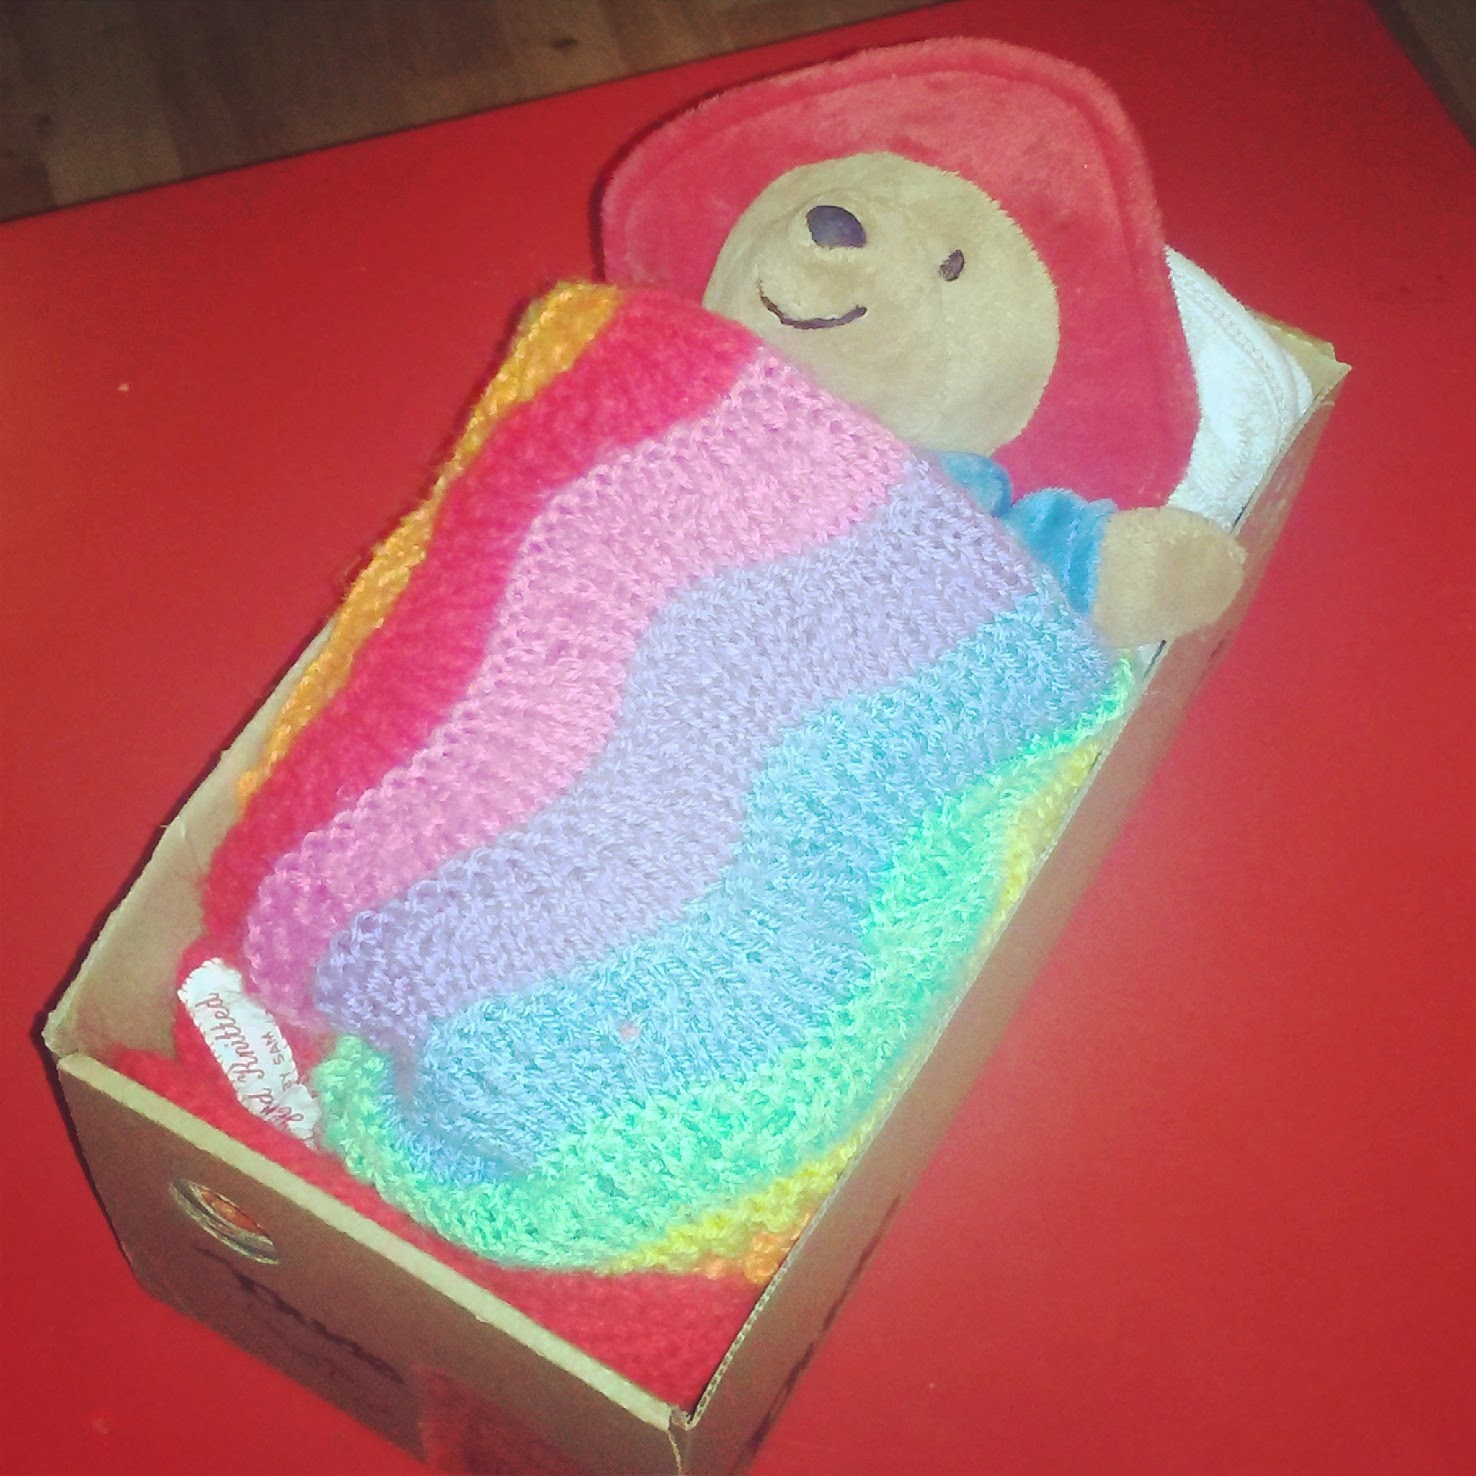 Paddington in bed with rainbow blanket